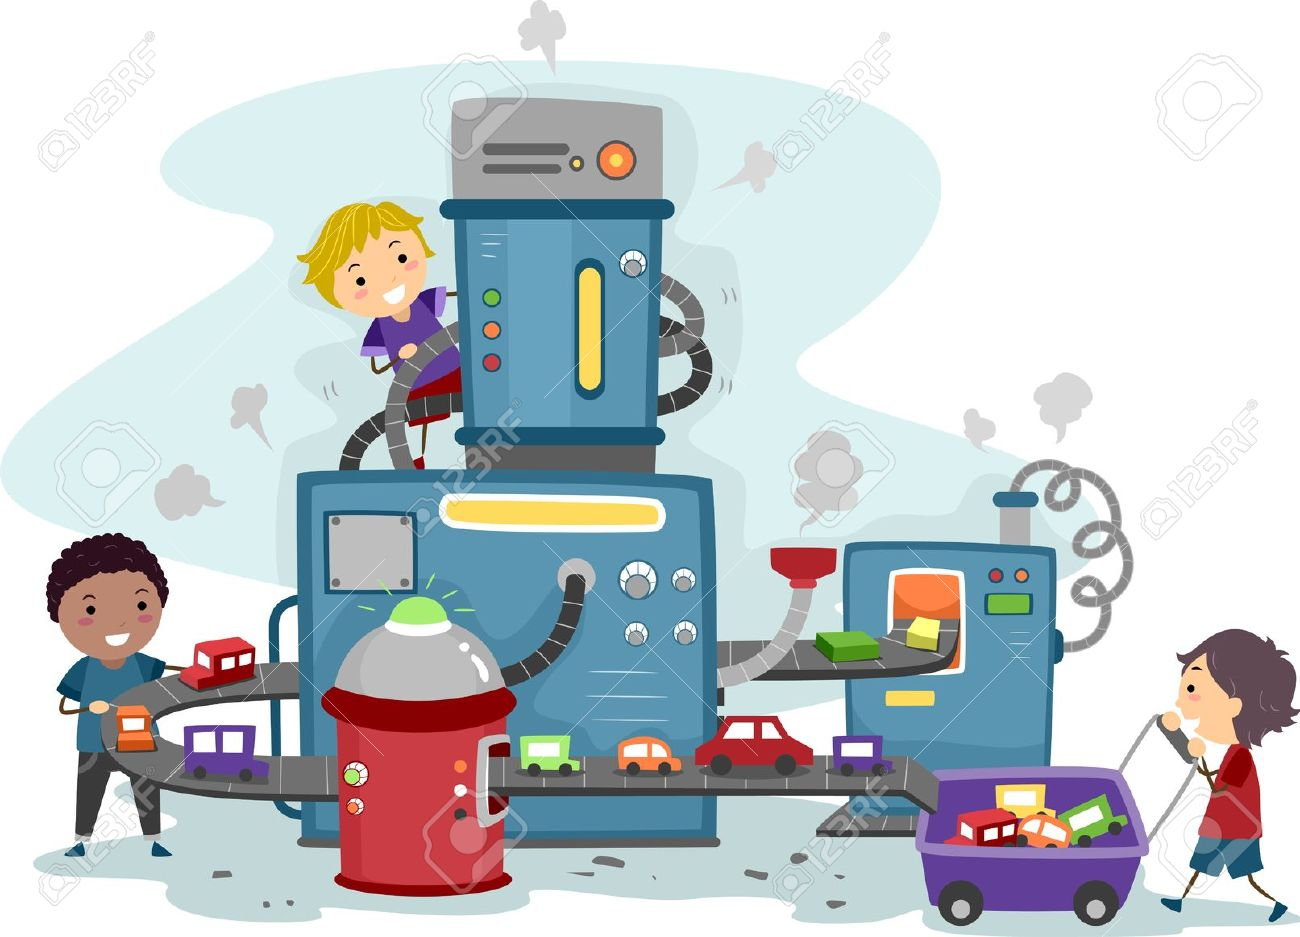 Illustration of Kids Playing in a Toy Car Factory Stock Illustration - 11197737